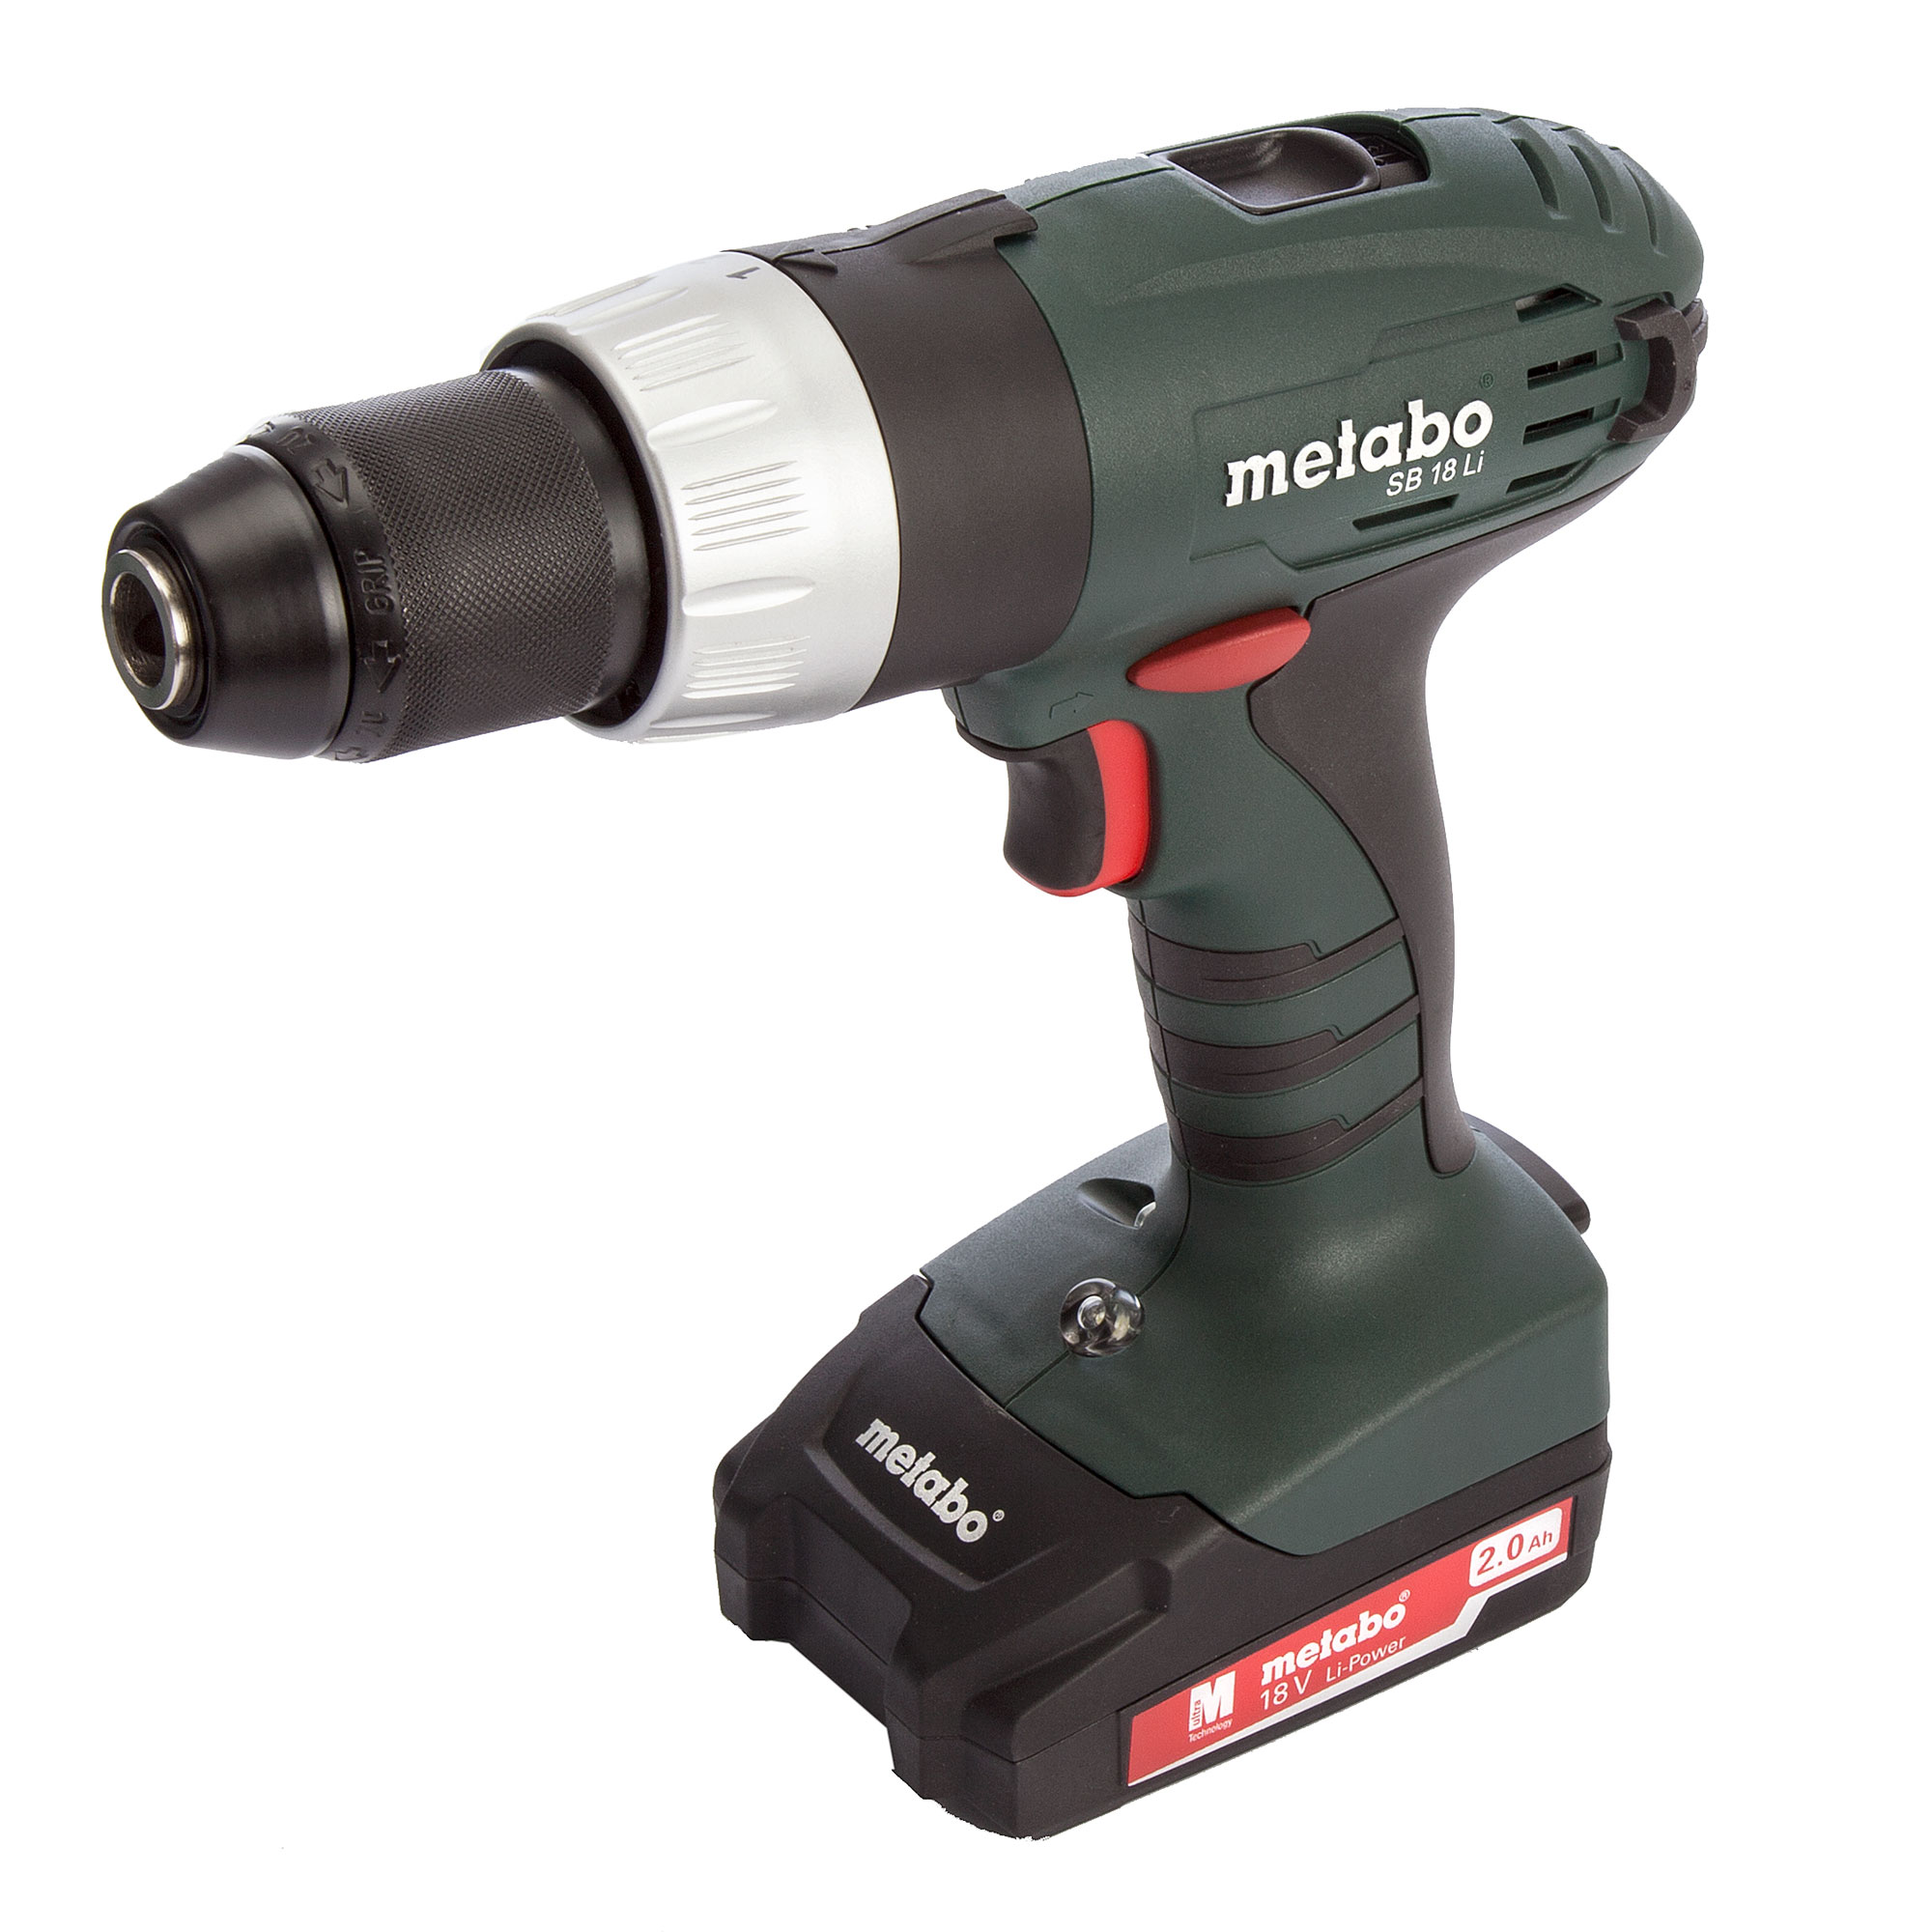 metabo sb 18 li metabo 18v hammer drill driver. Black Bedroom Furniture Sets. Home Design Ideas